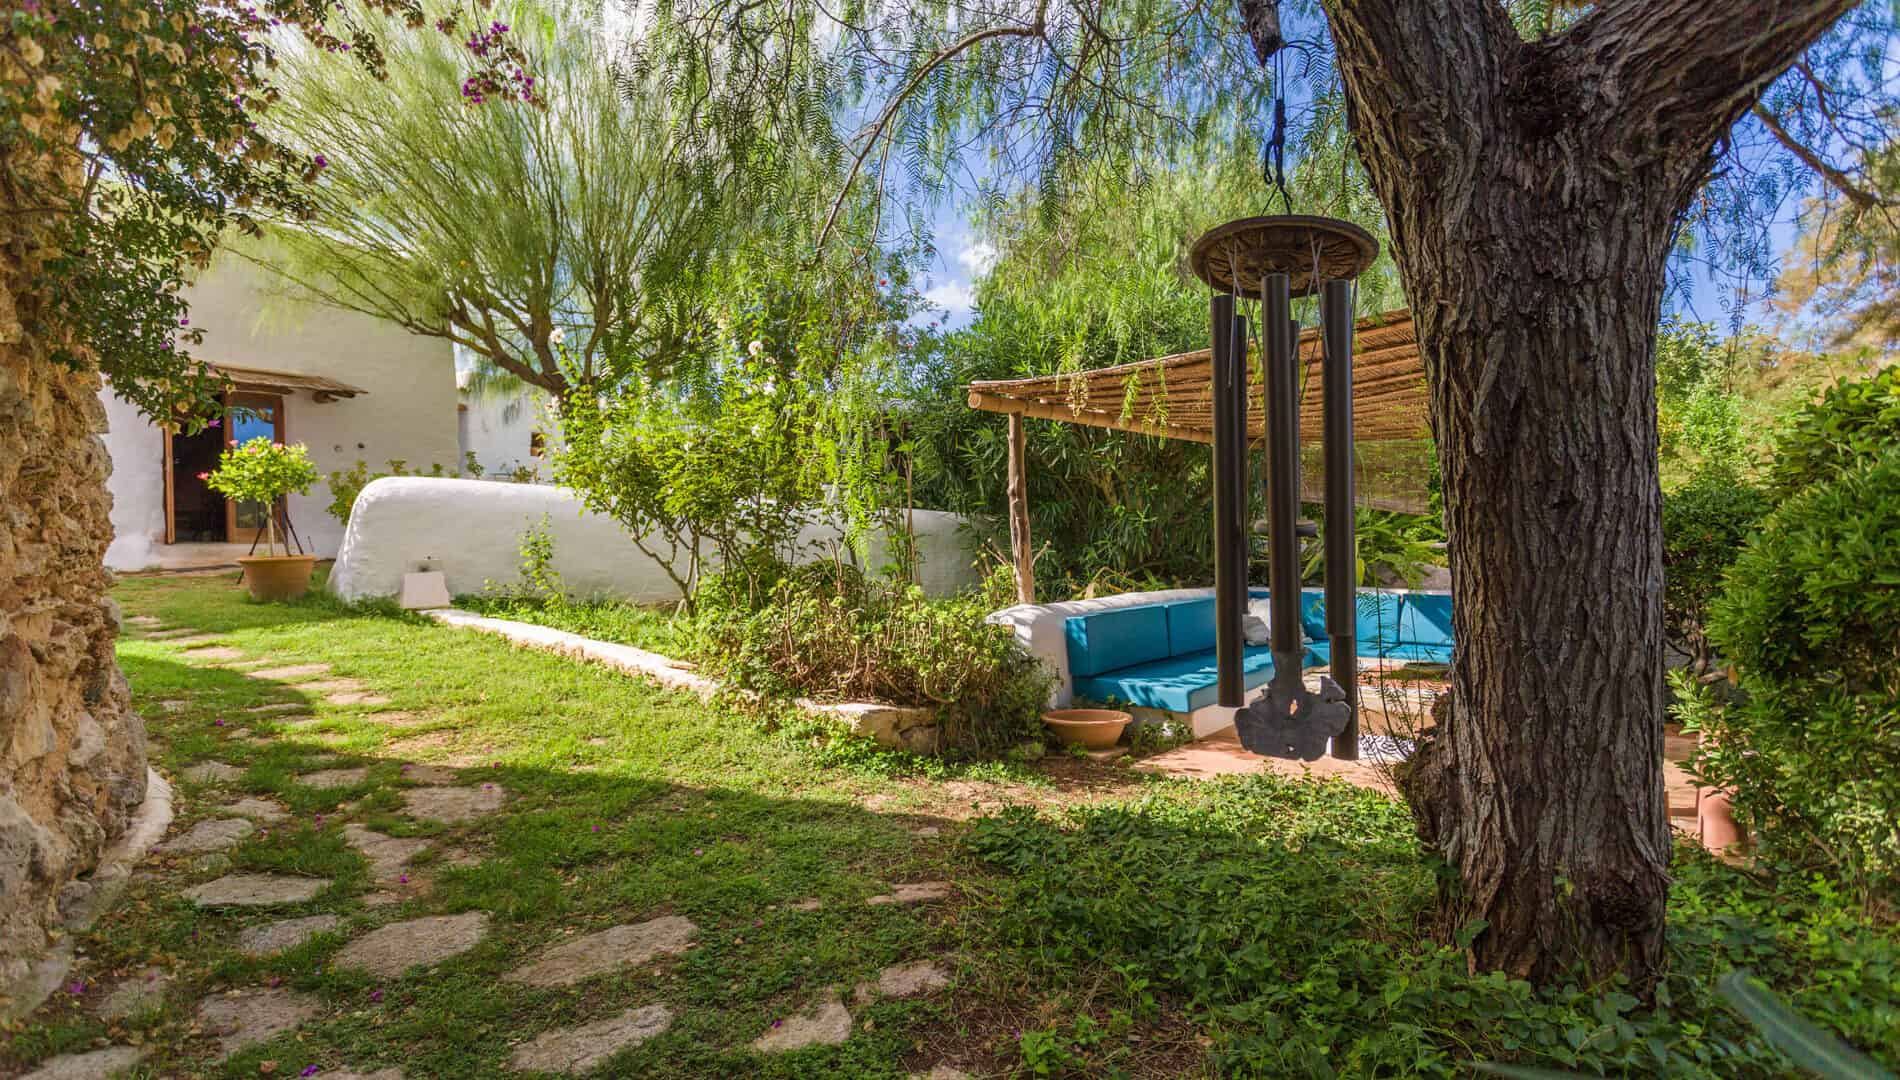 Lovely authentic finca with heated pool for winter rental.